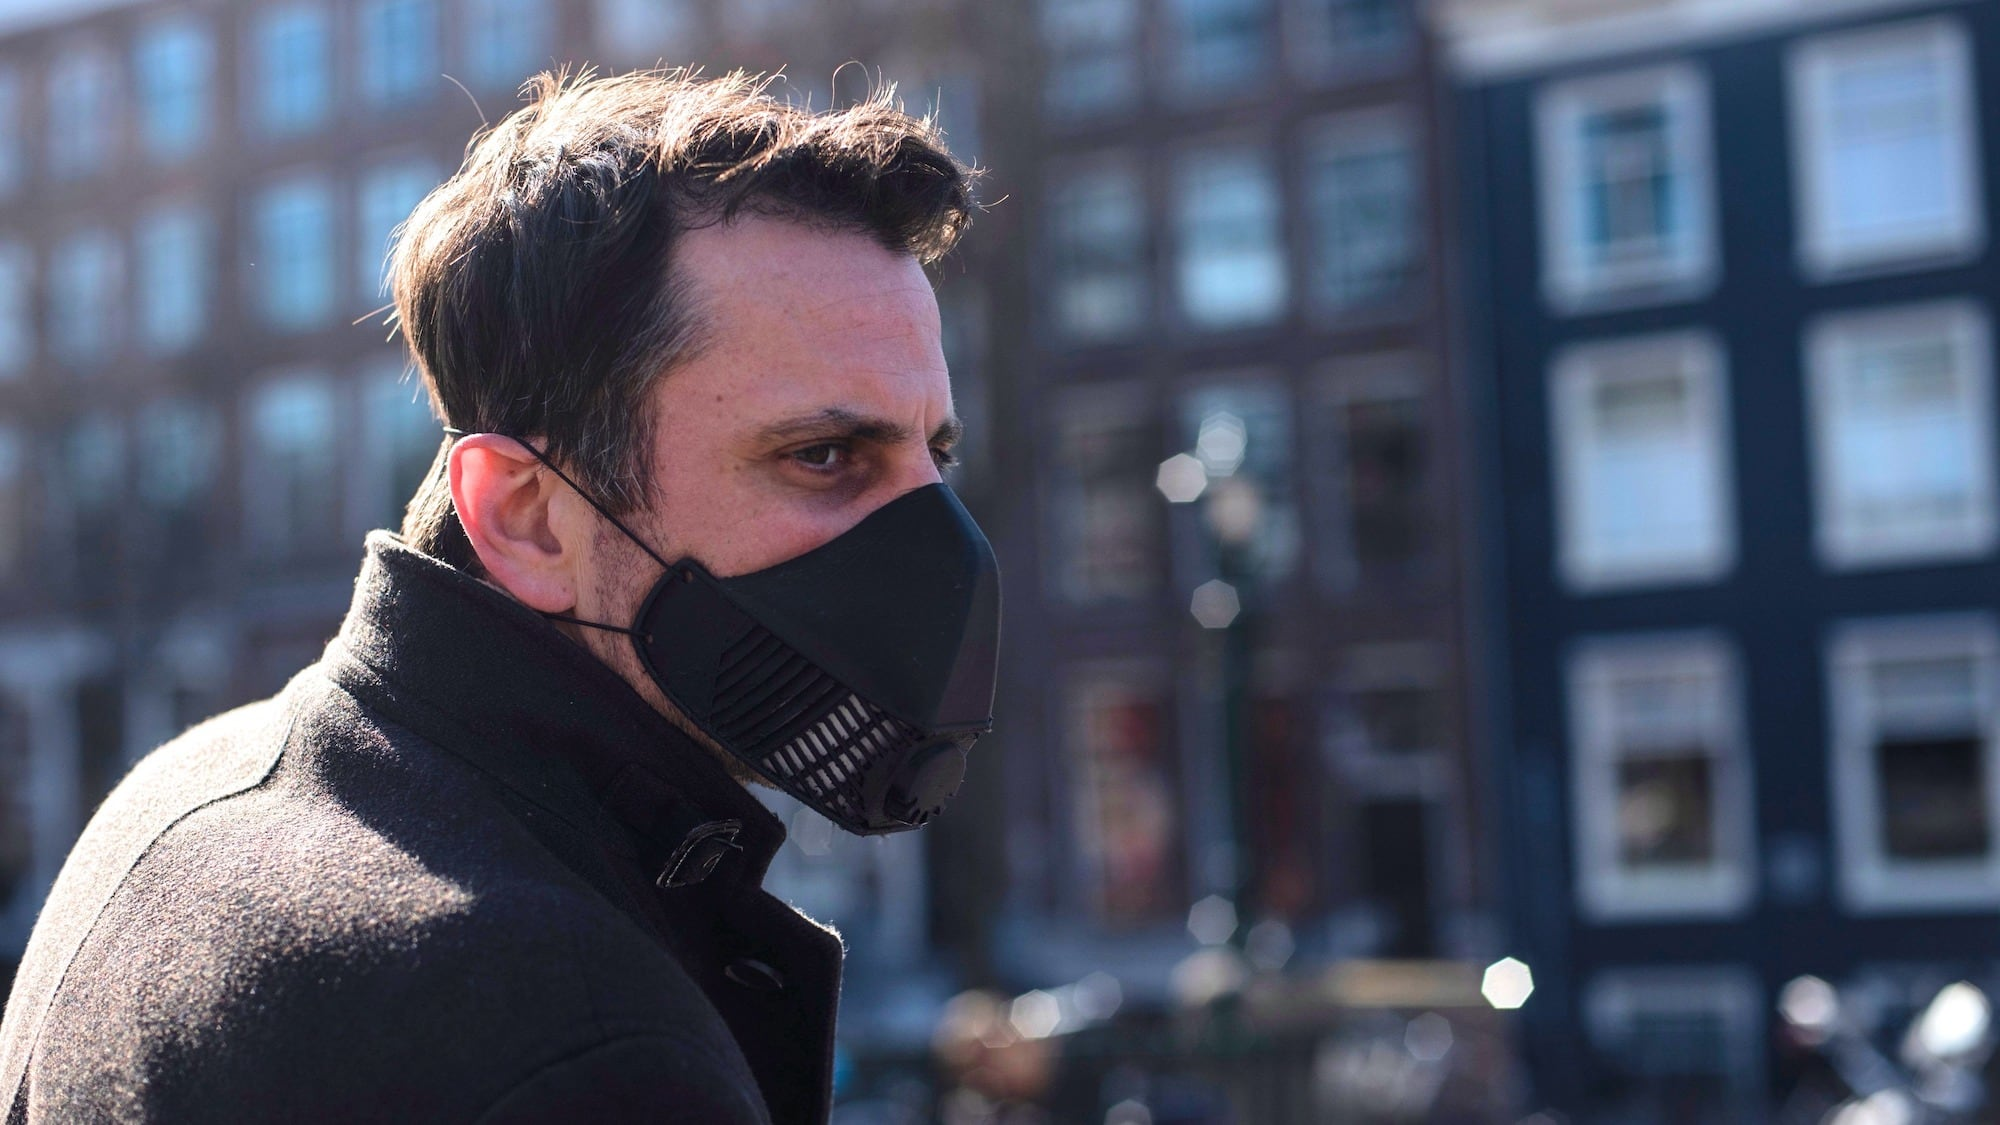 LMP S2 Reusable Protective Face Mask uses carbon filters for an N99 rating